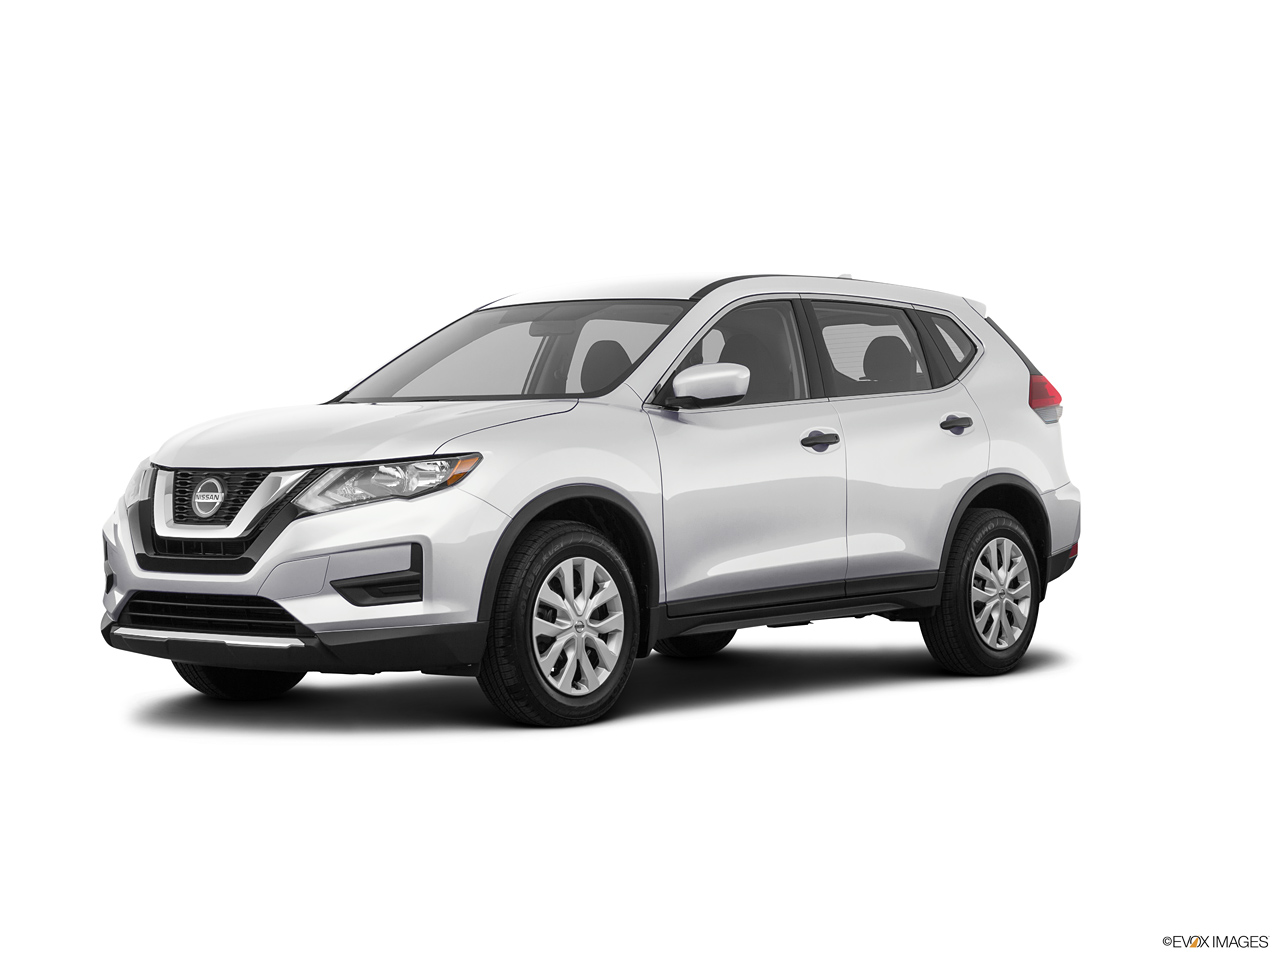 Clay Cooley Nissan Dallas Tx >> Car Pictures List for Nissan X-Trail 2018 2.5 SV 4WD 7 ...